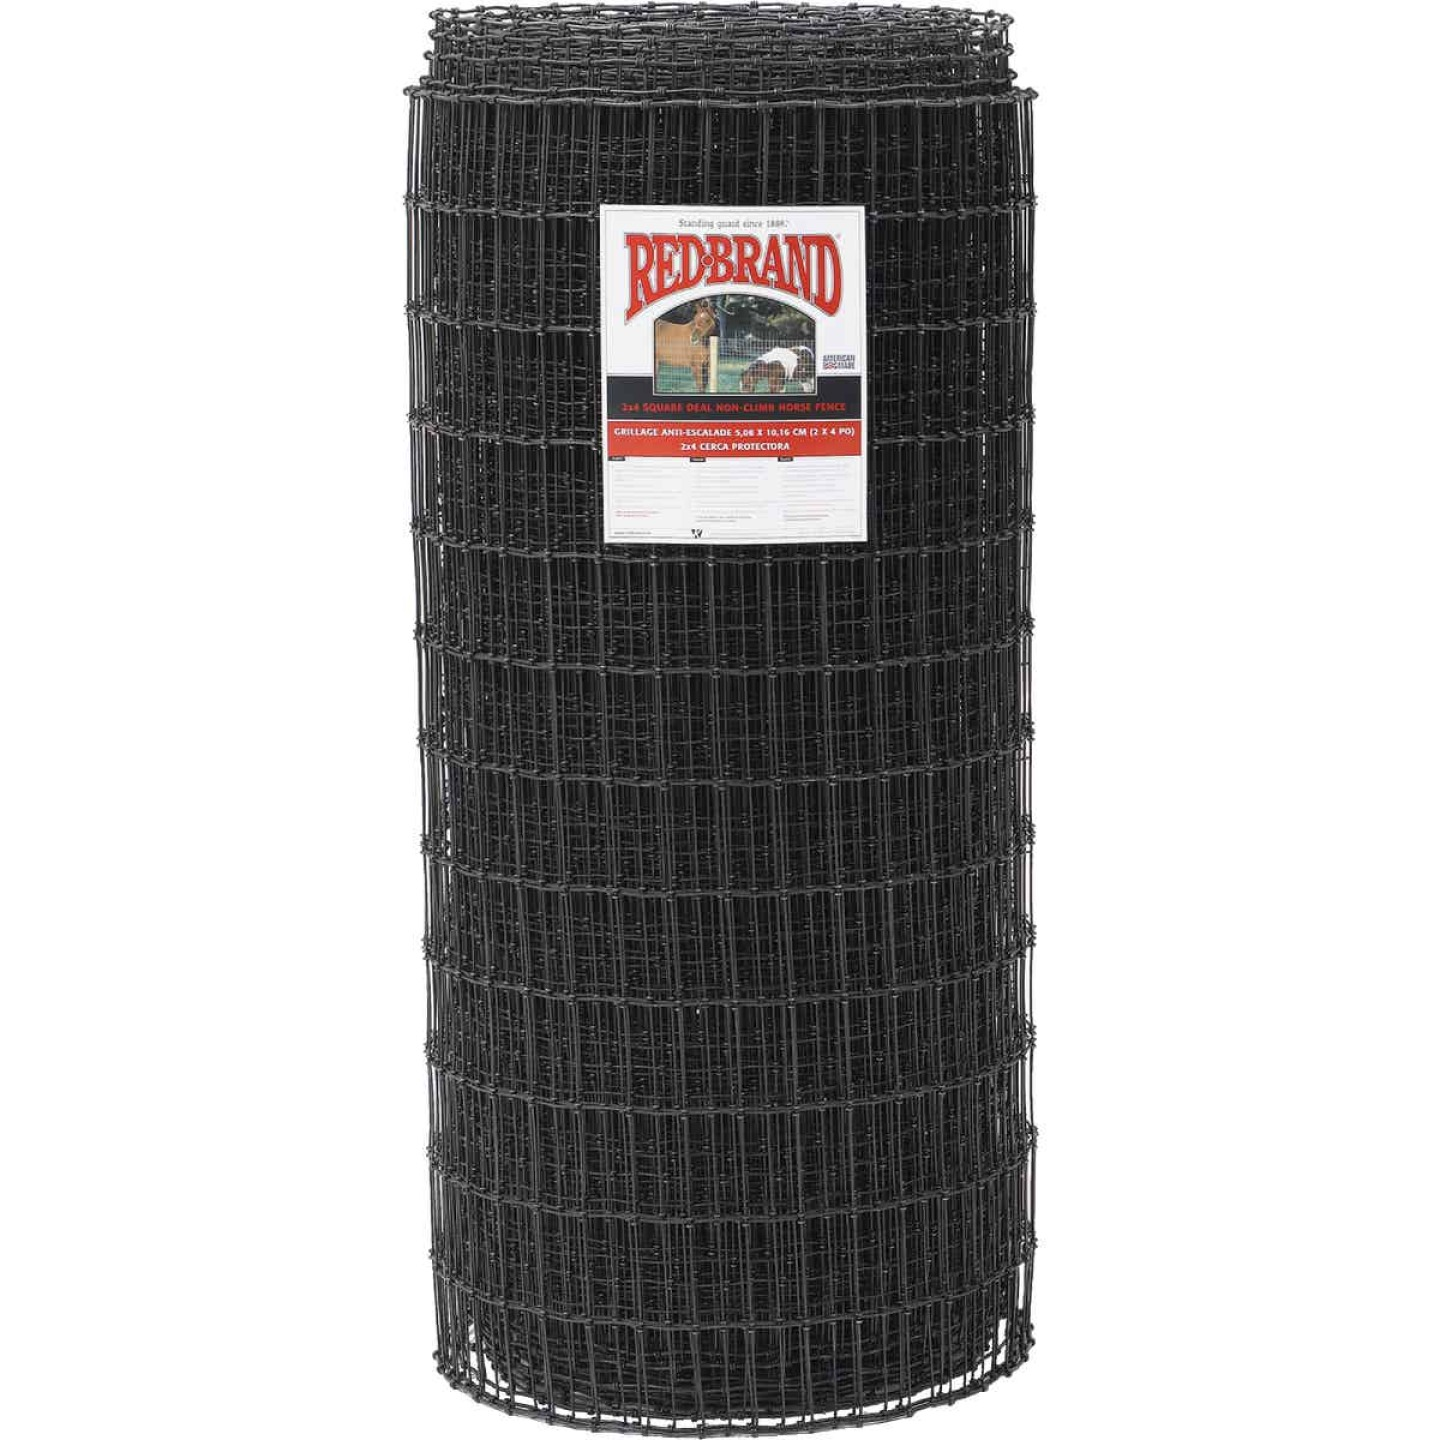 Keystone Red Brand 48 In. H. x 100 Ft. L. Black Painted Galvanized Steel Class 1 Square Deal Non-Climb Horse Fence Image 1